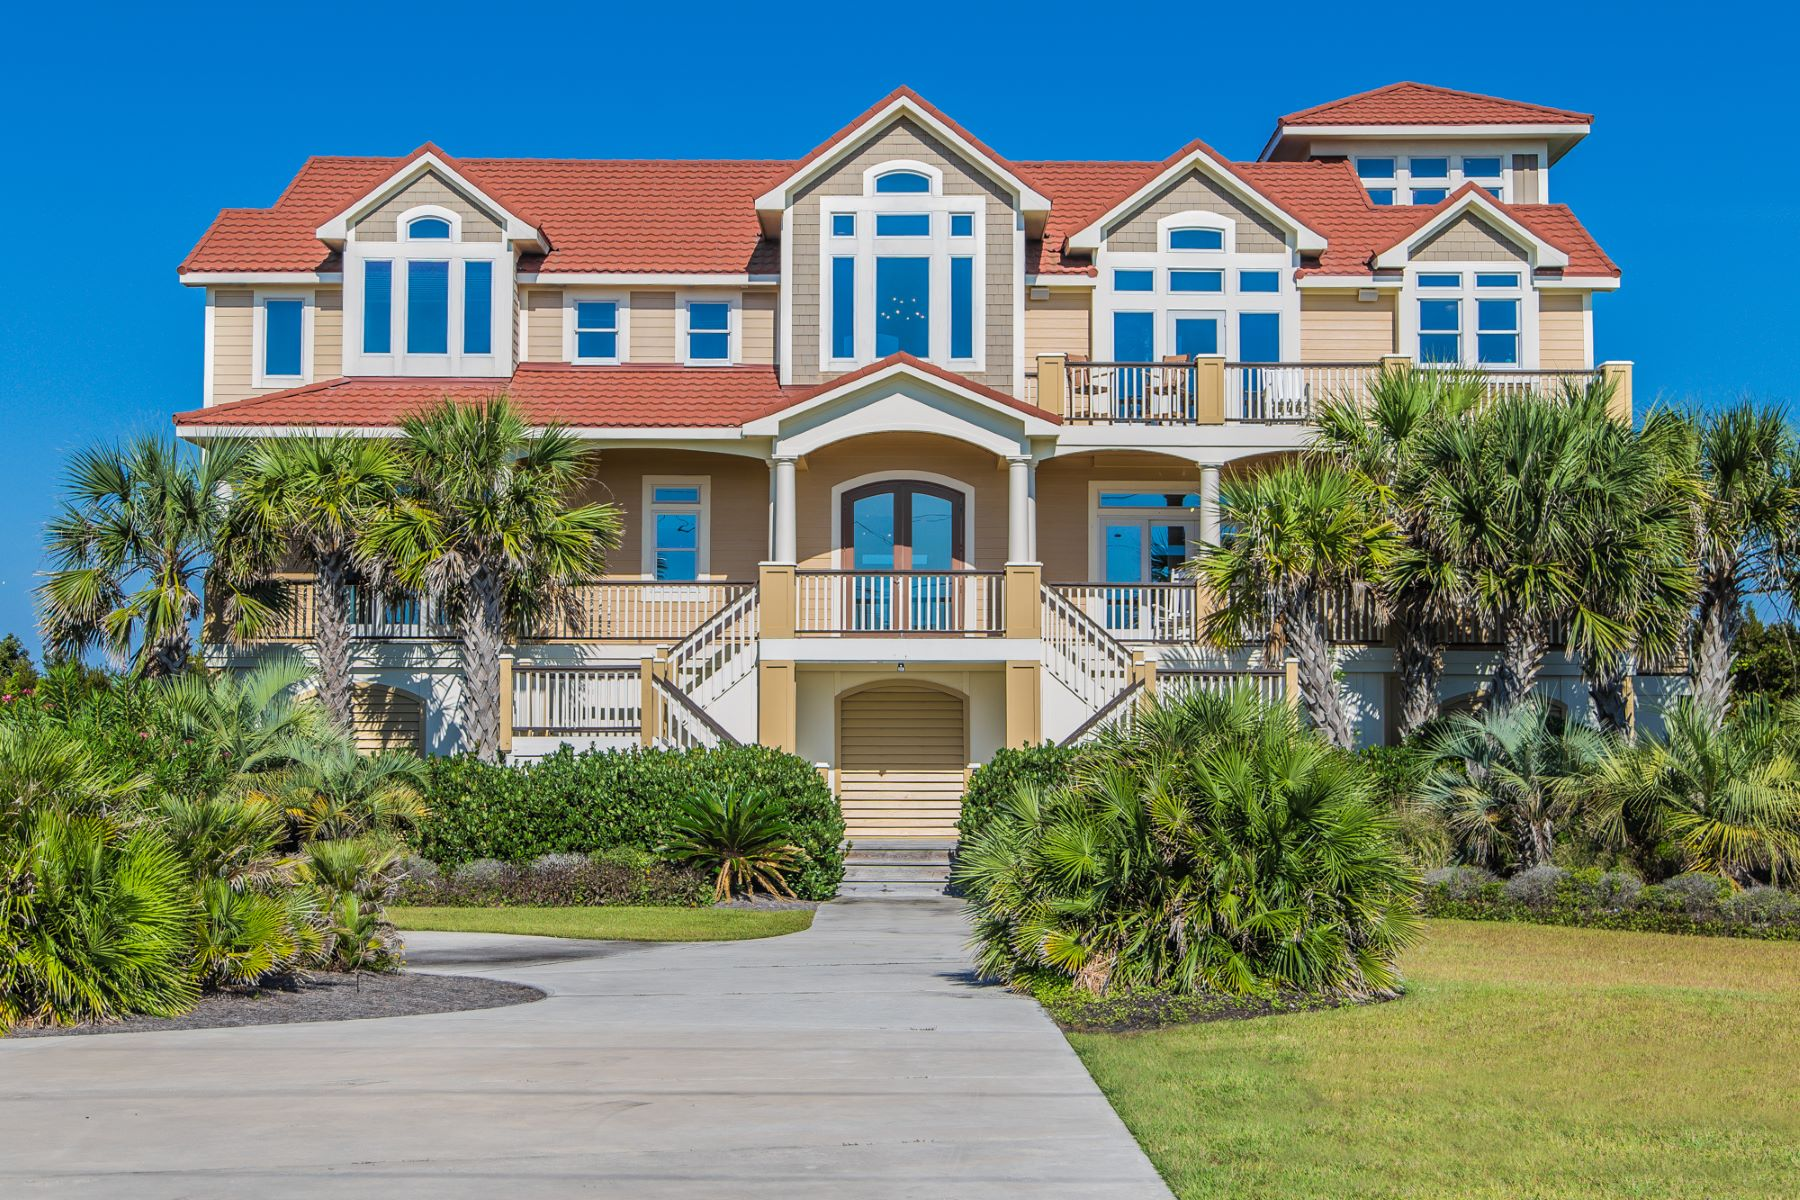 Maison unifamiliale pour l Vente à Harmonious view of both the ocean and sound in ultimate privacy 557 New River Inlet Road N Topsail Beach, Carolina Du Nord, 28460 États-Unis